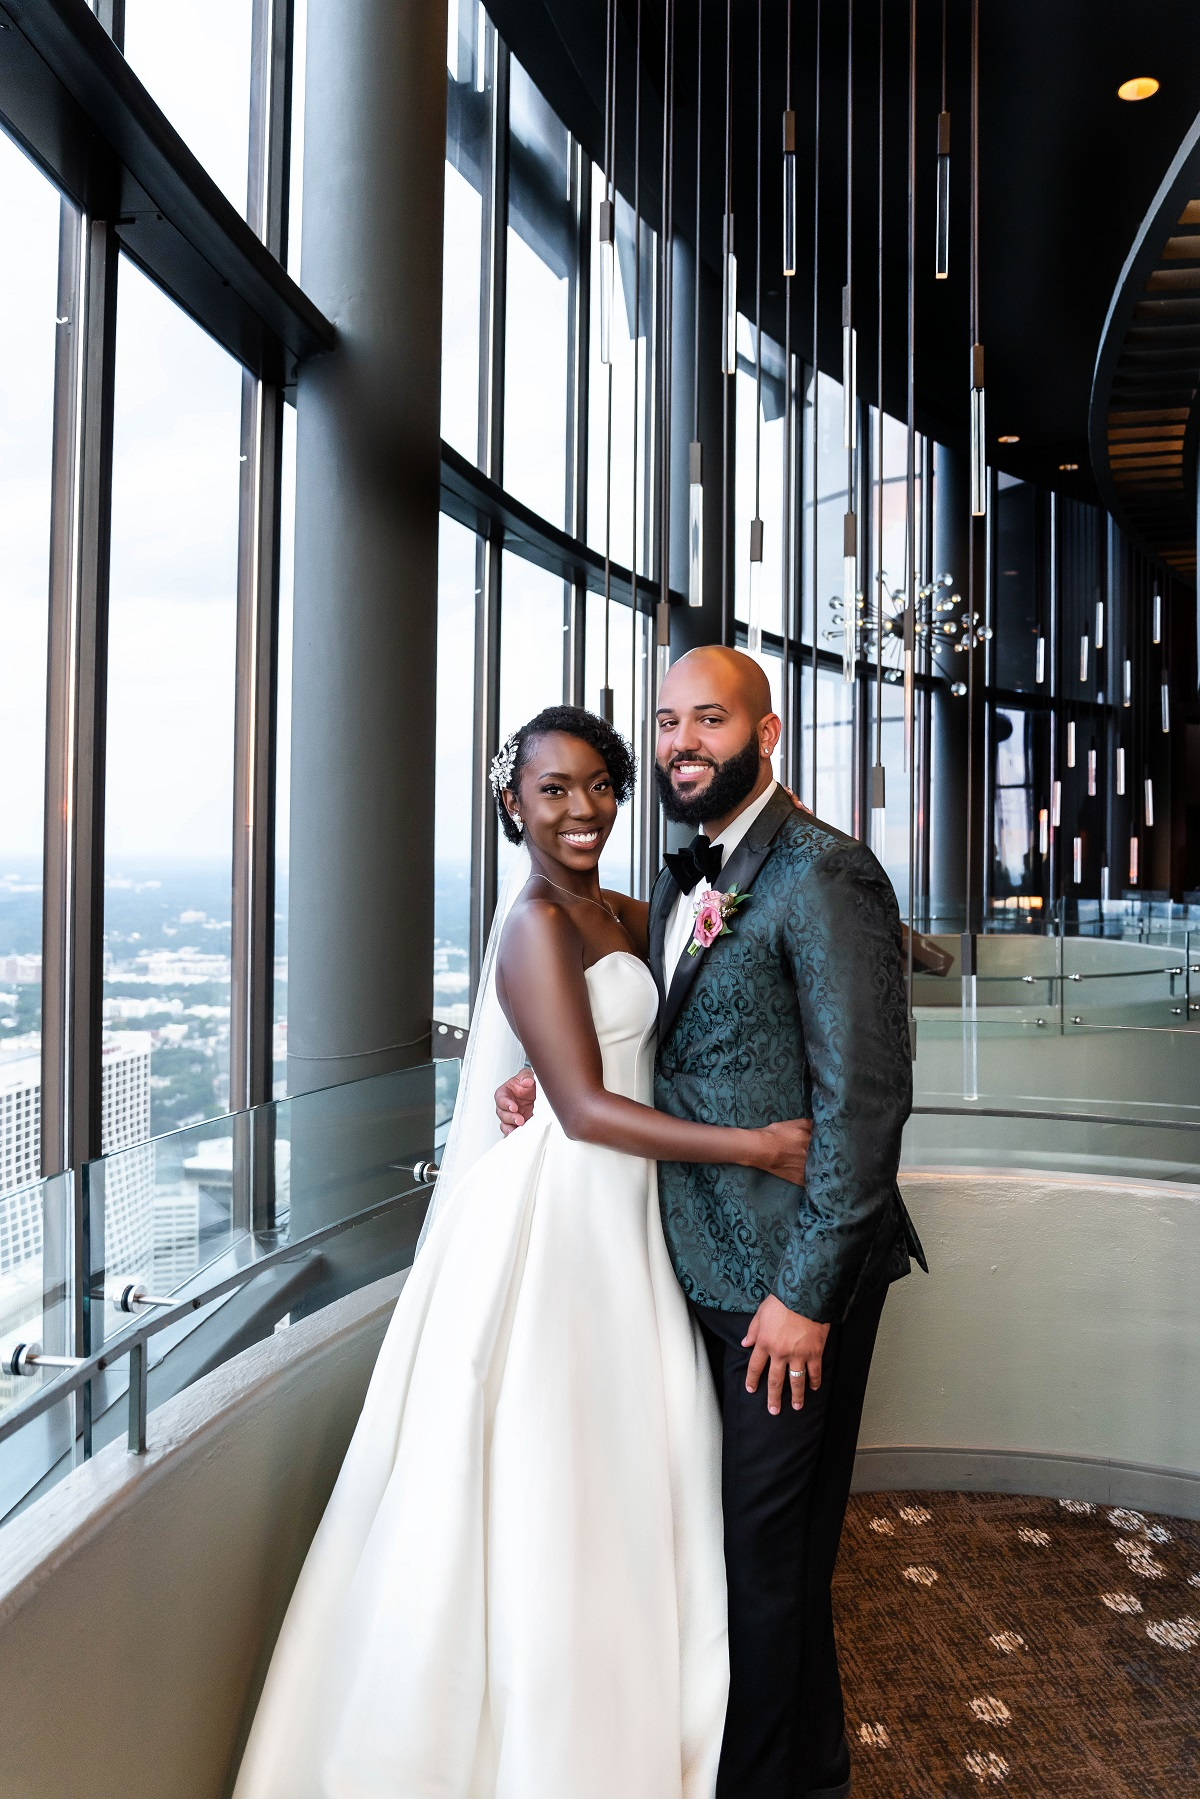 Briana and Vincent from 'Married at First Sight'